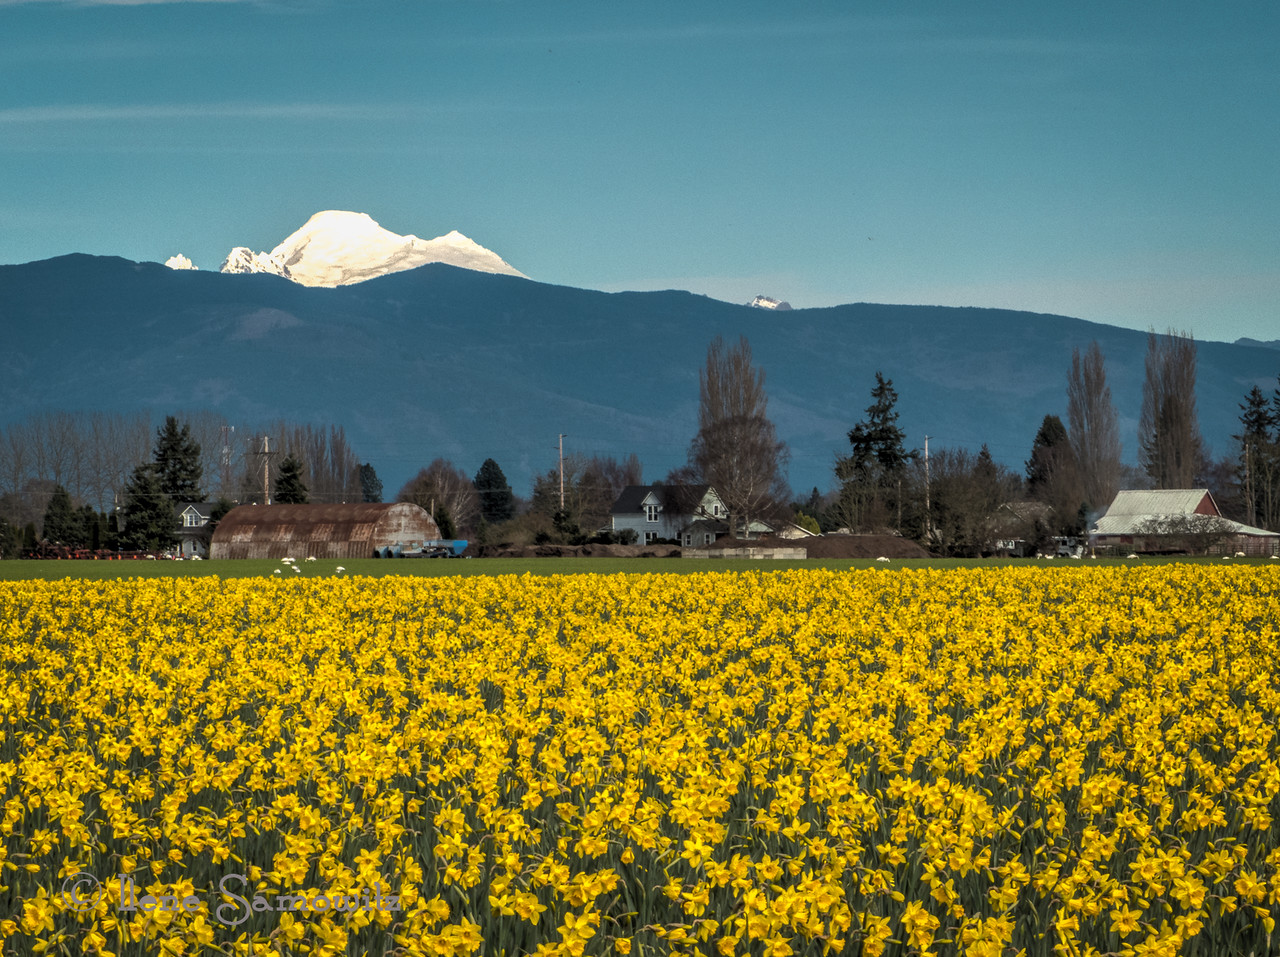 Mount Baker and Daffs